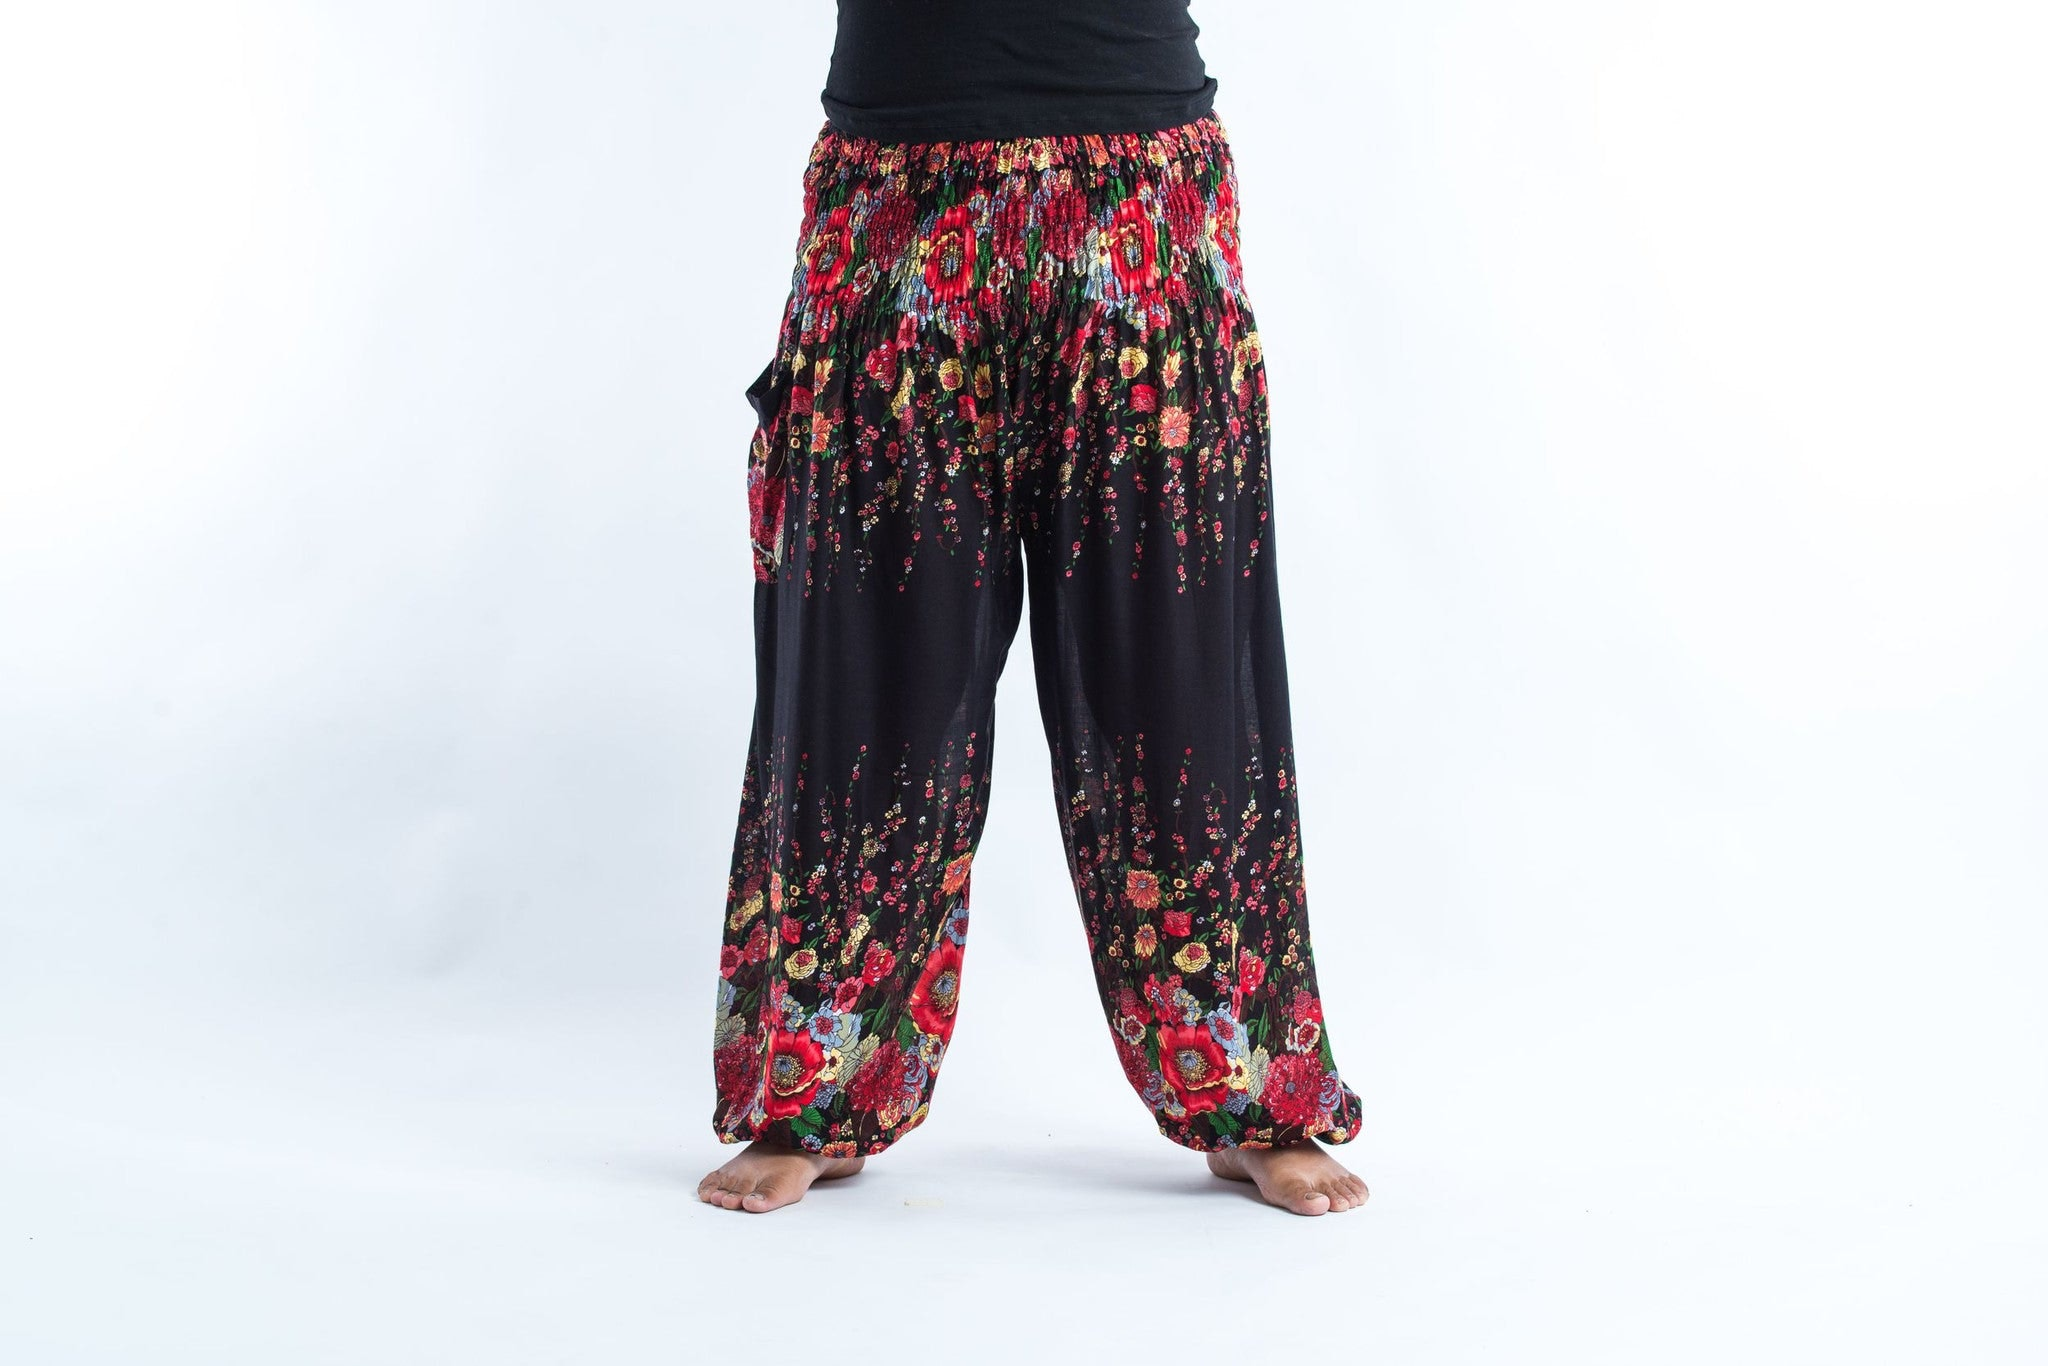 Luxury Plus Size Floral Womenu0026#39;s Harem Pants In Black